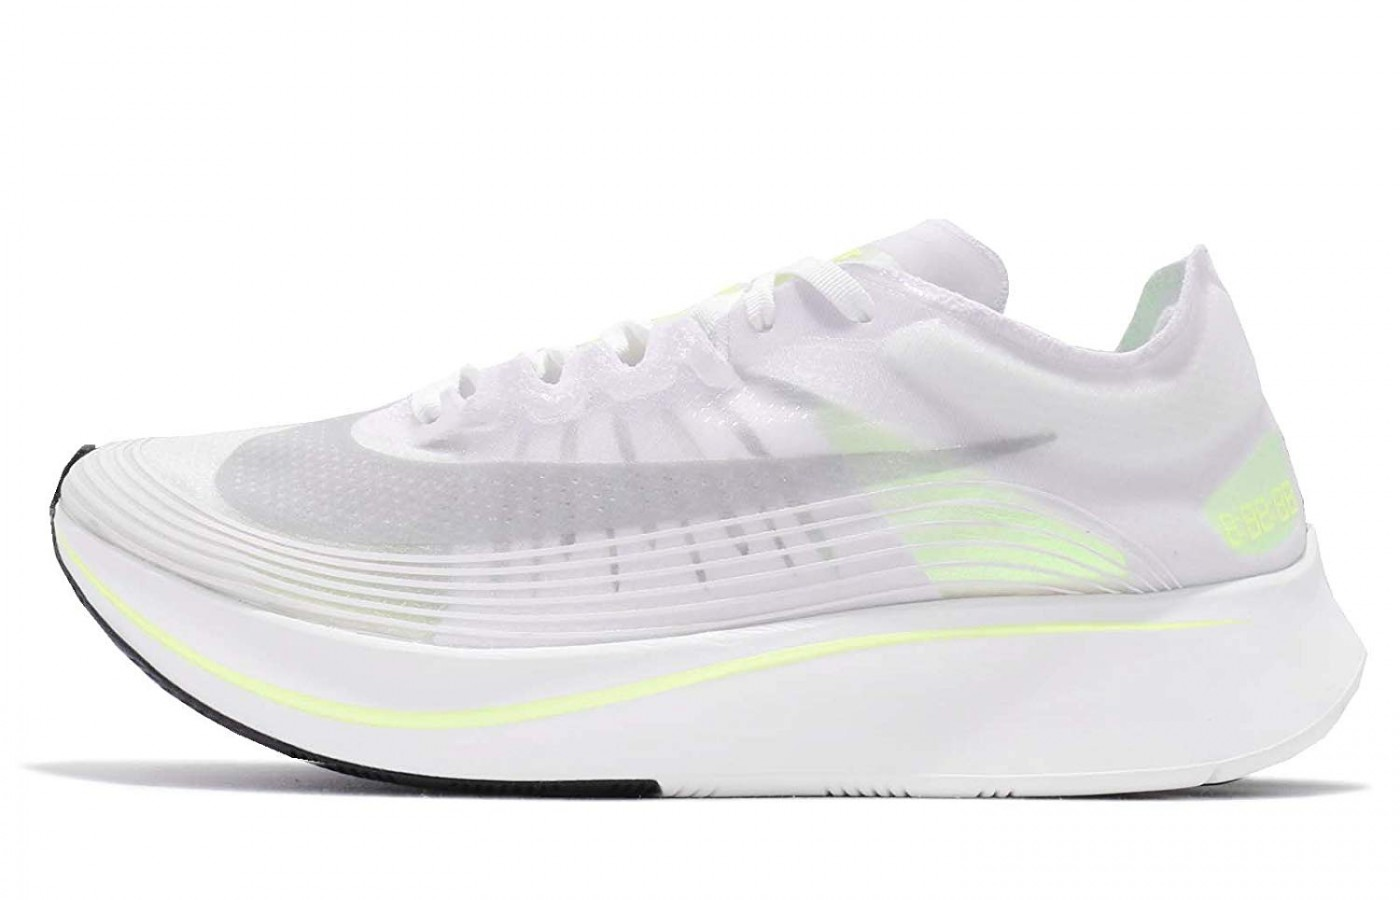 a7fb4e768804 Nike Zoom Fly SP Reviewed for Performance in 2019